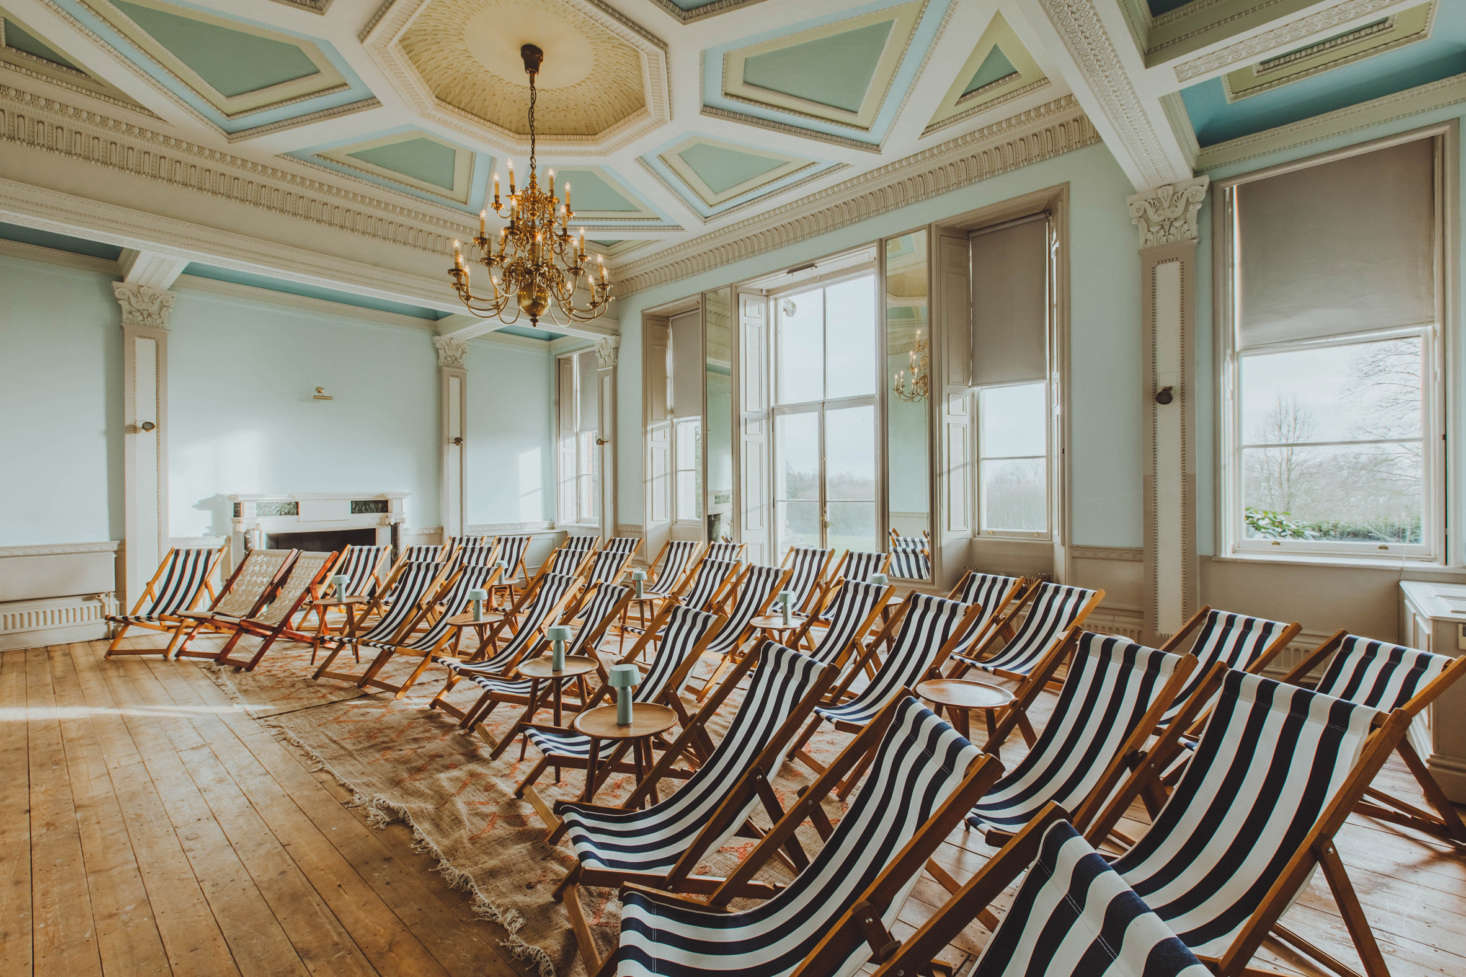 The screening room has rows of striped canvas deck chairs.